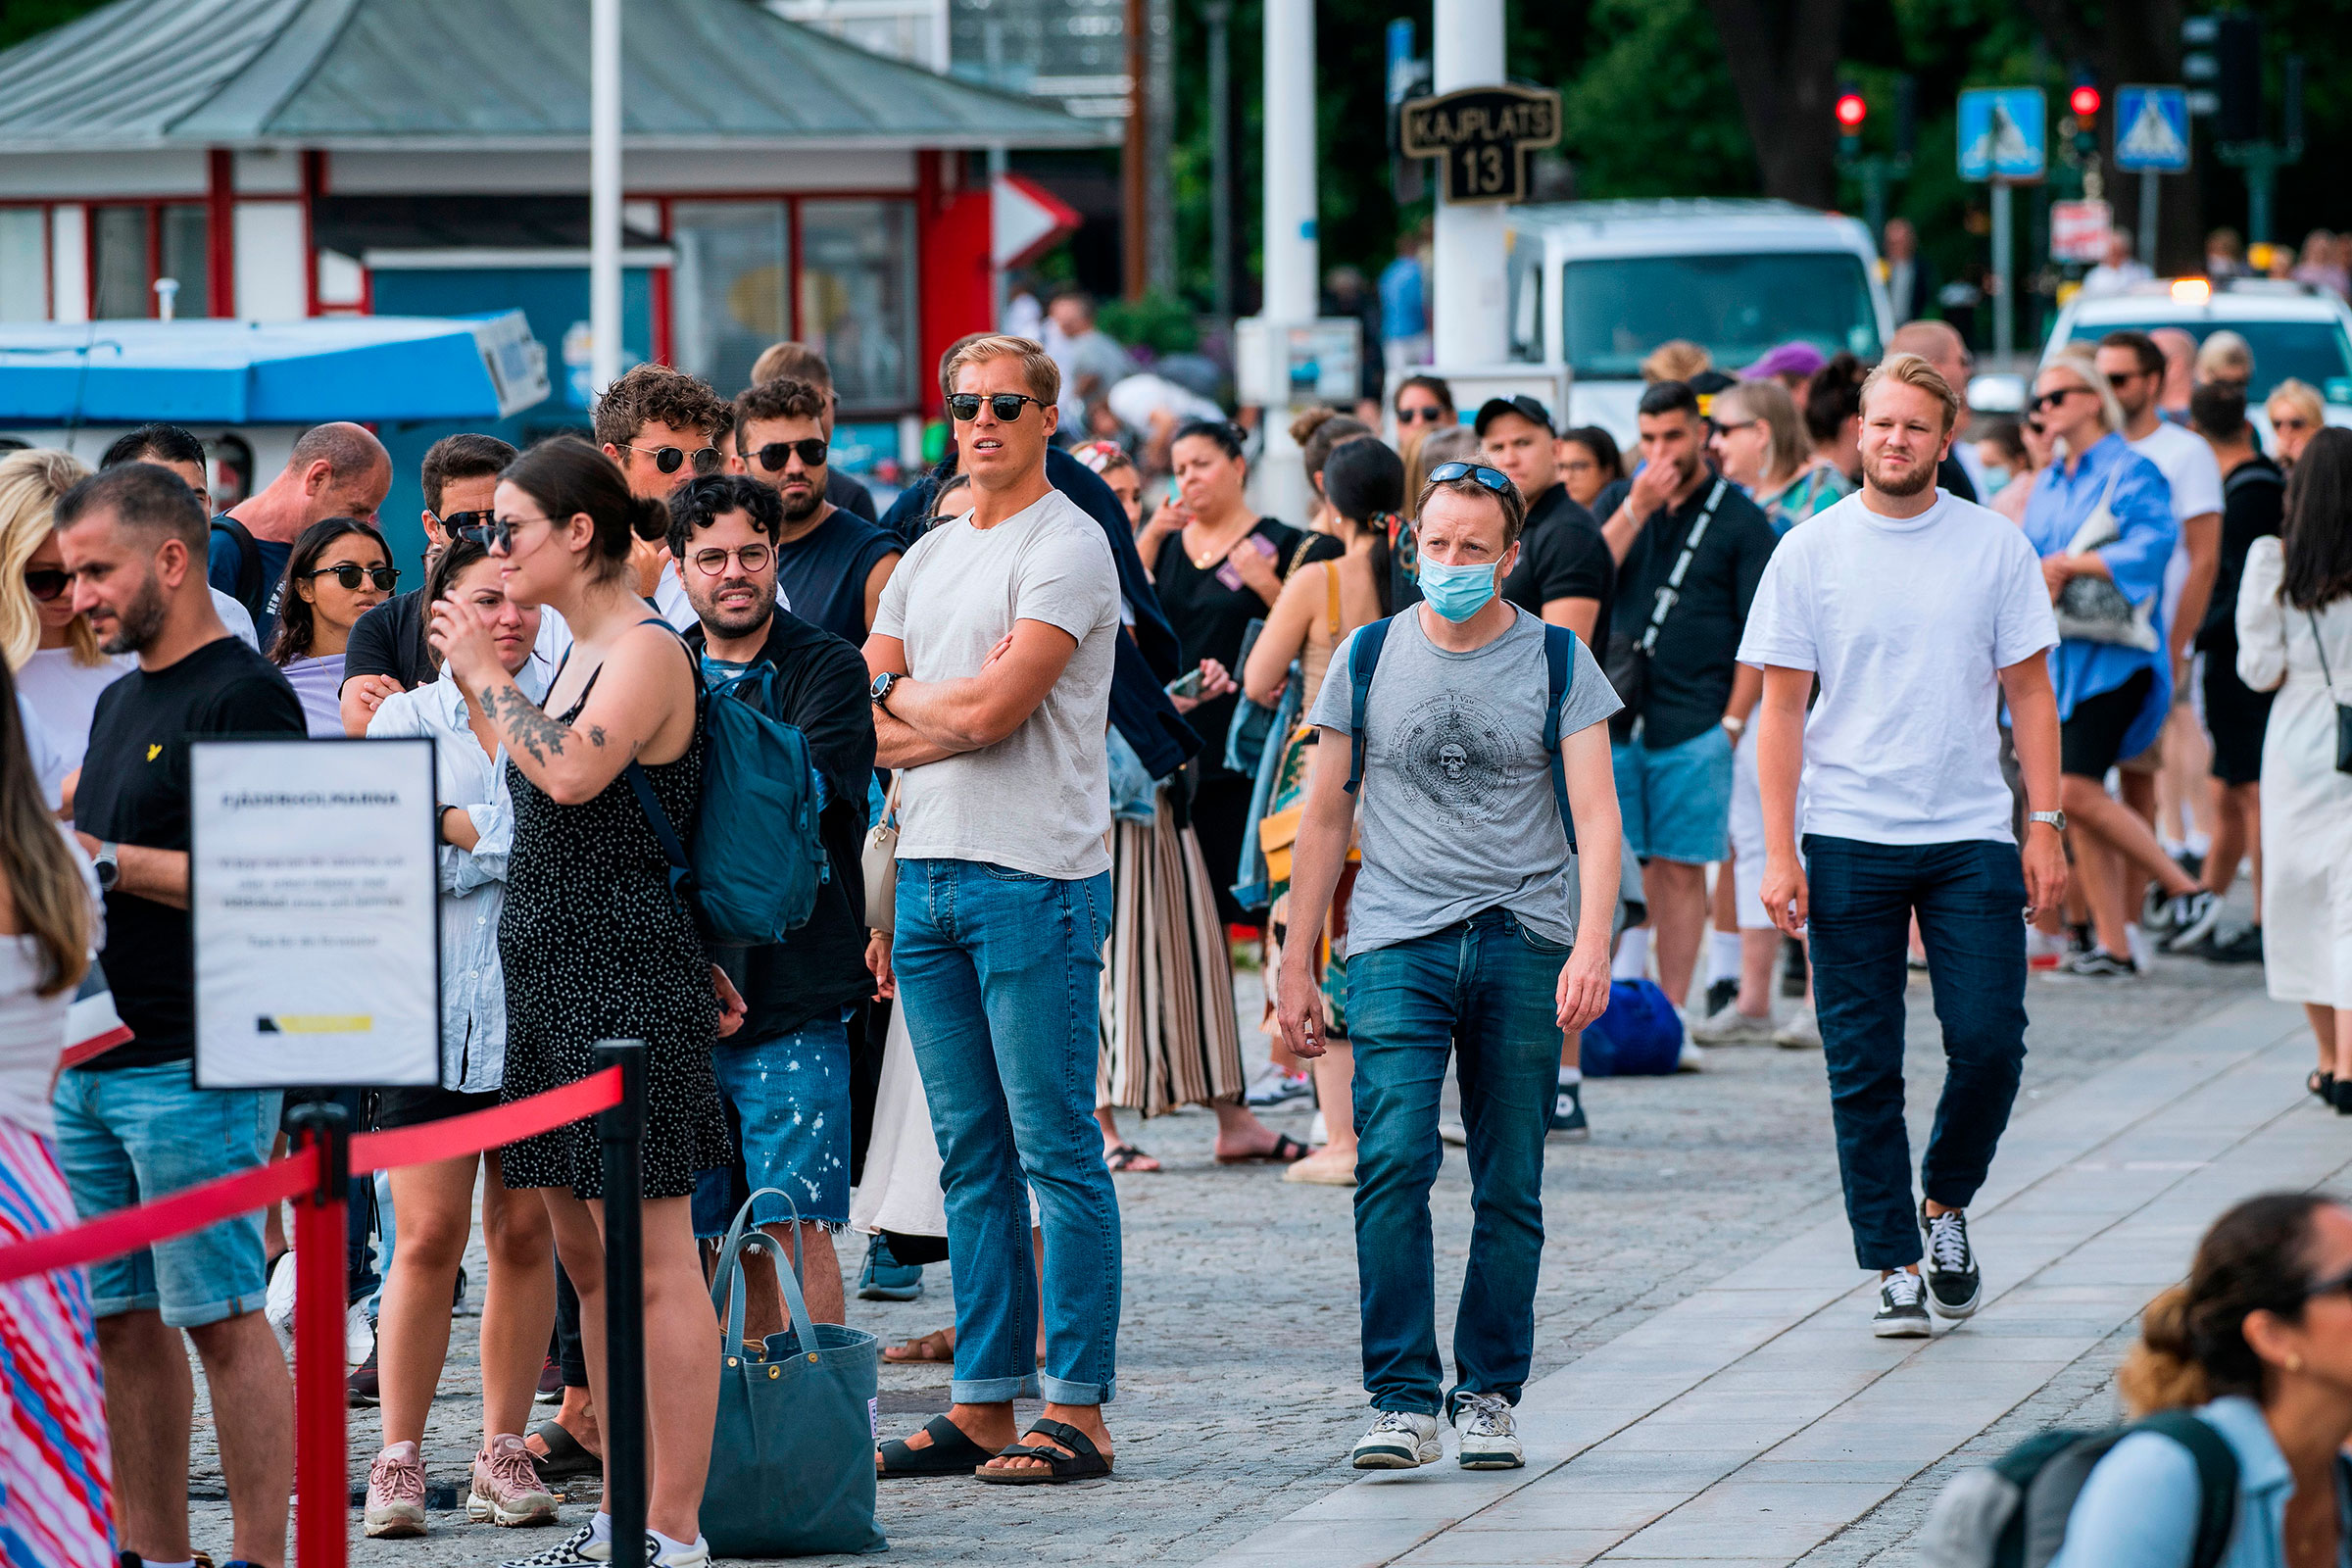 A man wearing a protective mask walks next to travelers as they queue up to board a boat in Stockholm on July 27, 2020.